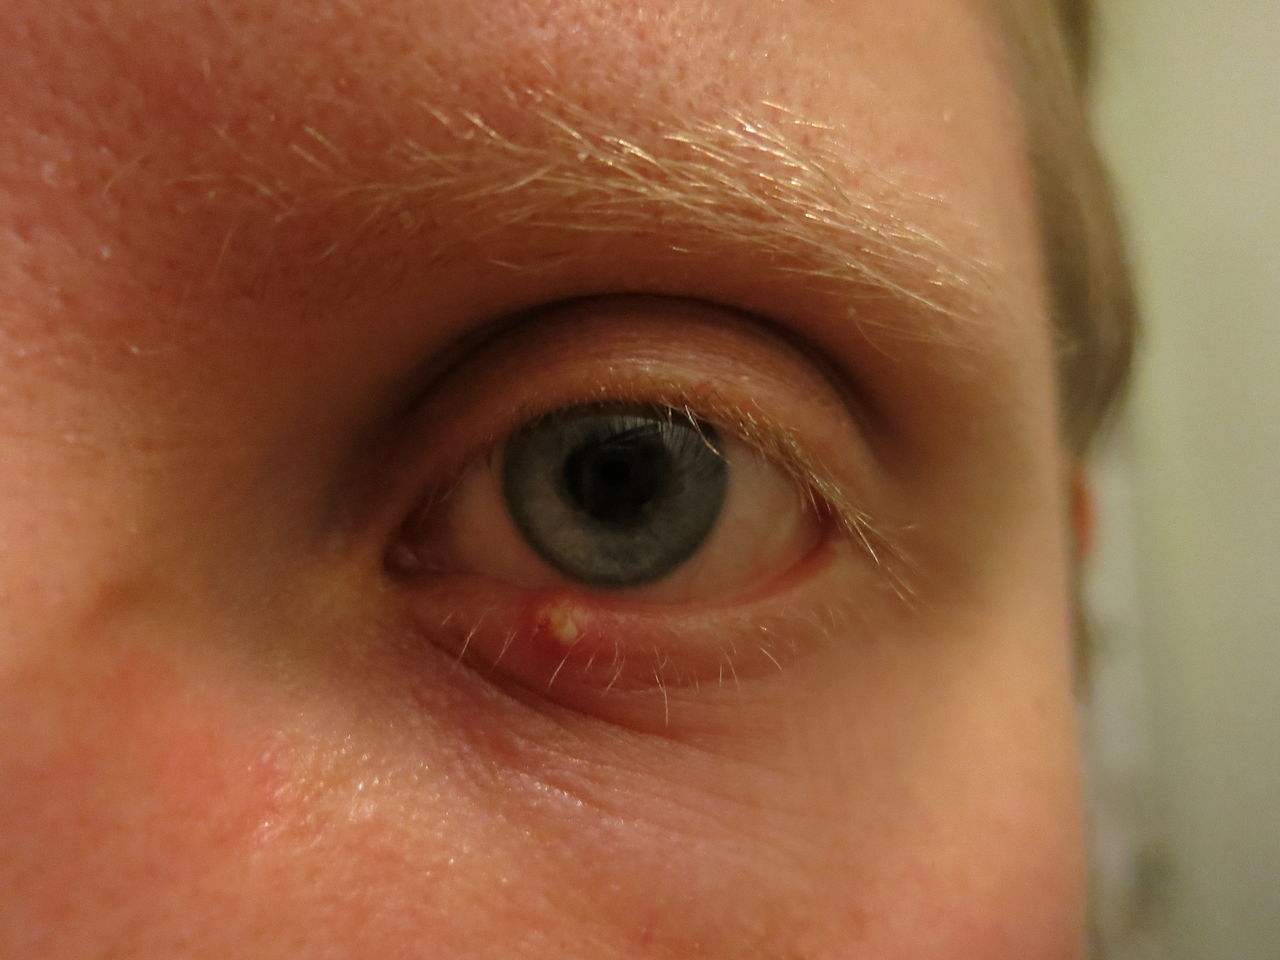 person with a stye under their eye